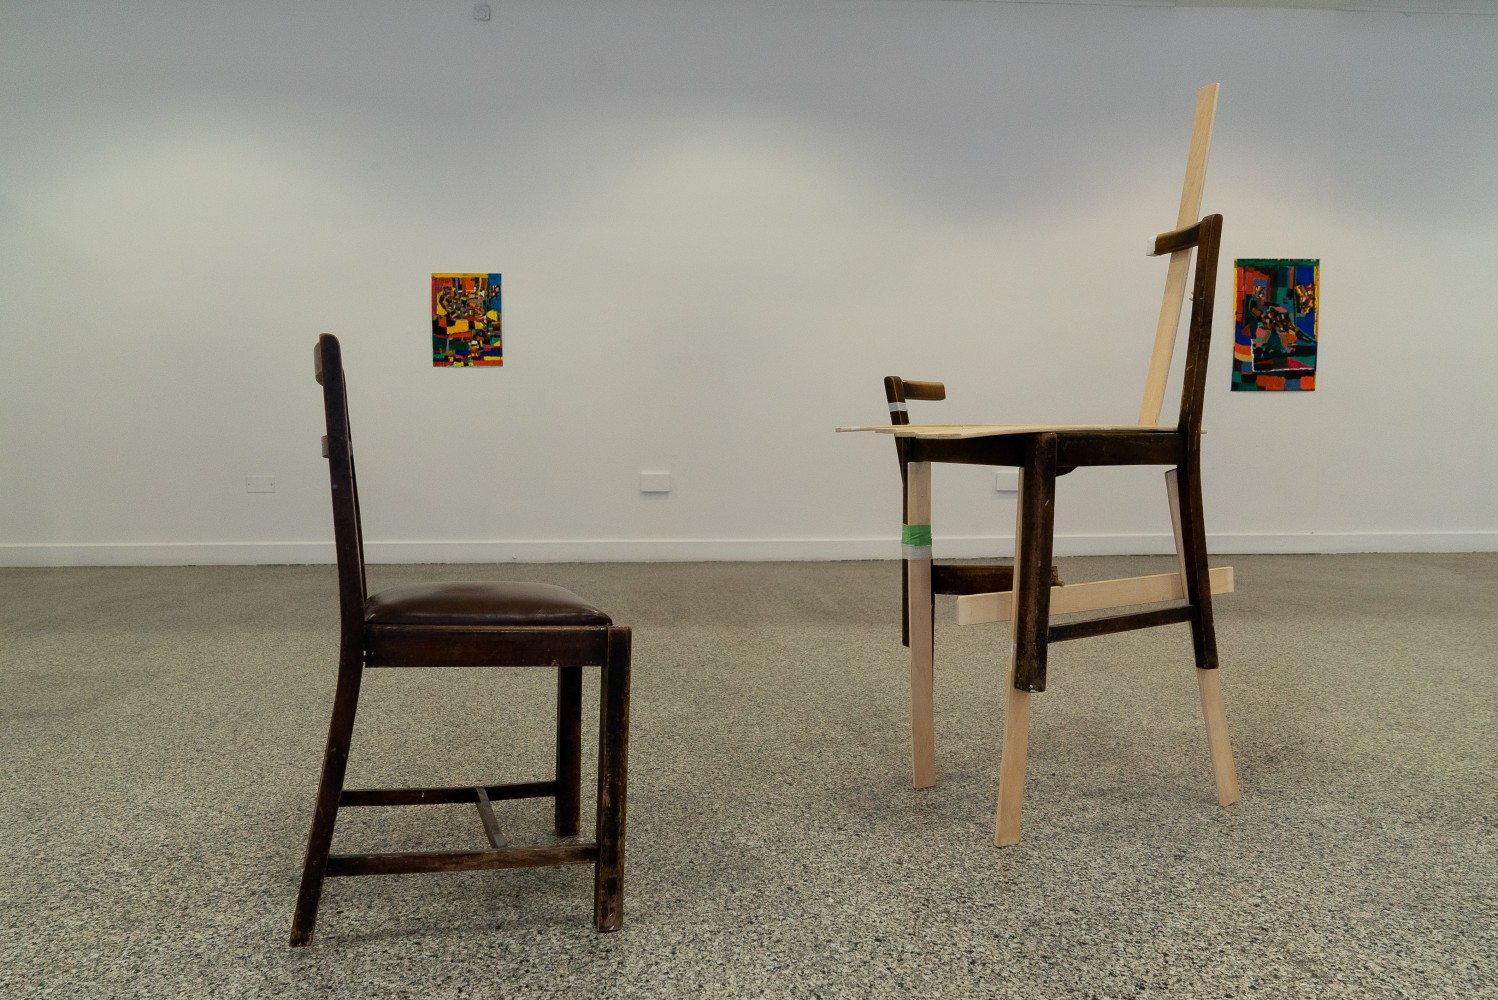 This image shows two altered or deconstructed dark wooden chairs in a gallery. There is one chair to the left of the frame another on the right. The gallery wall is white and has two paintings on it. The gallery floor has a specked grey effect. The chair on the left hand side is resting uneven on the ground, one of it's legs is slightly shorter than the others. The chair on the right hand side is completely deconstructed and put back together in a strange way with lighter wood.